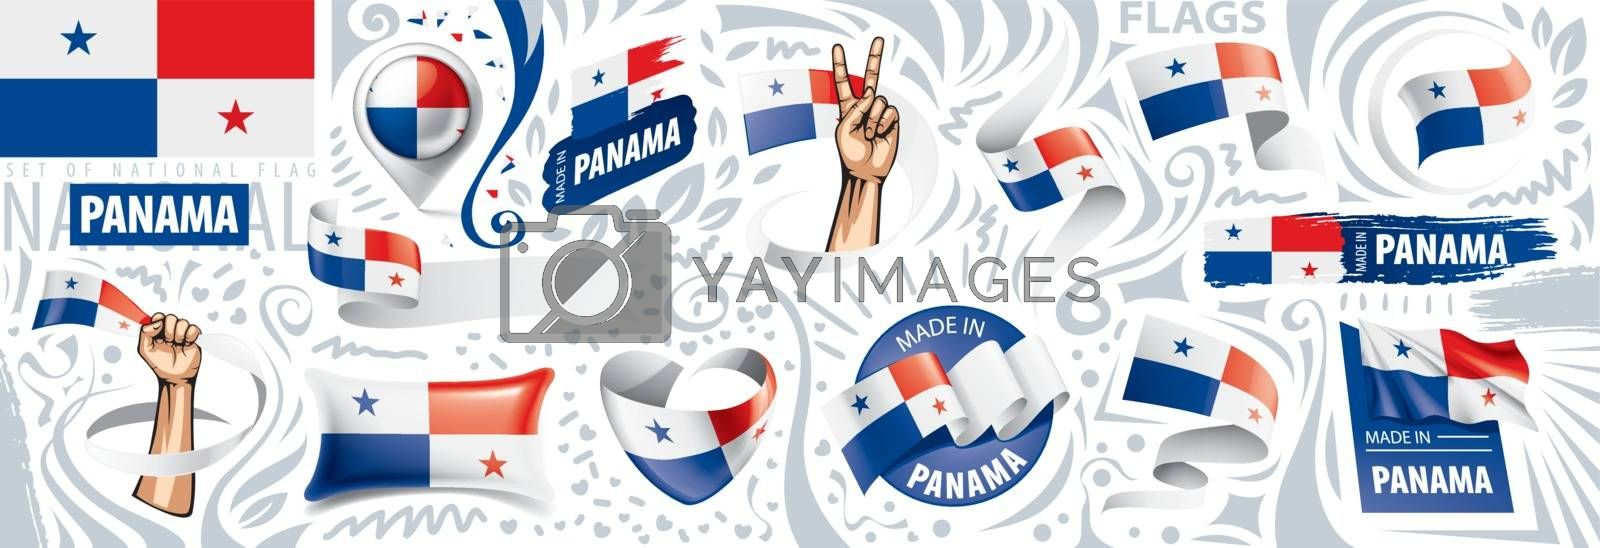 Vector set of the national flag of Panama in various creative designs.